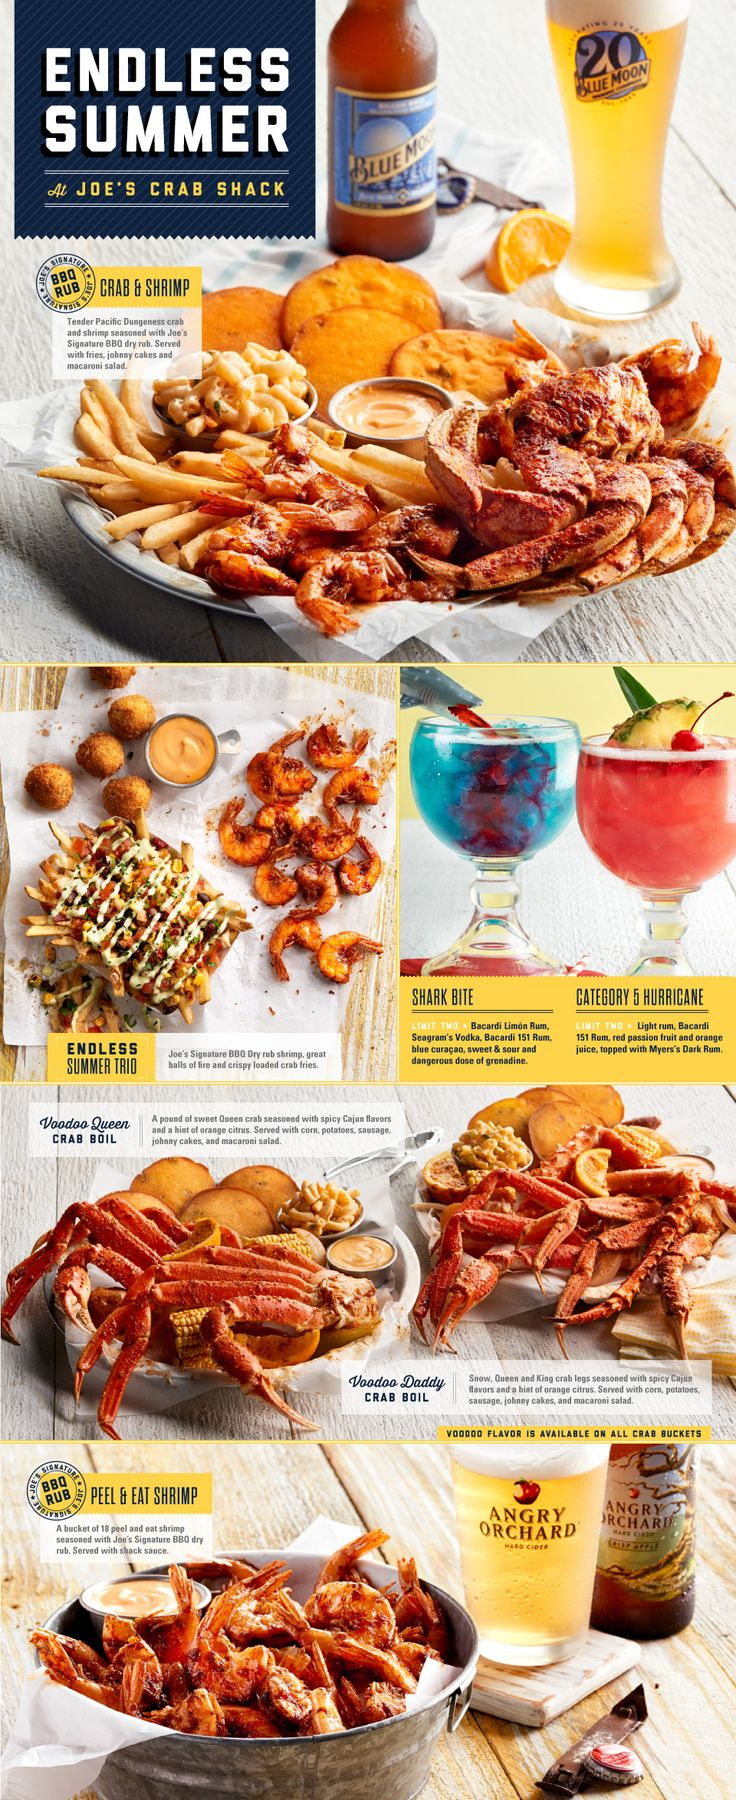 Joe's Crab Shack - Featured Menu